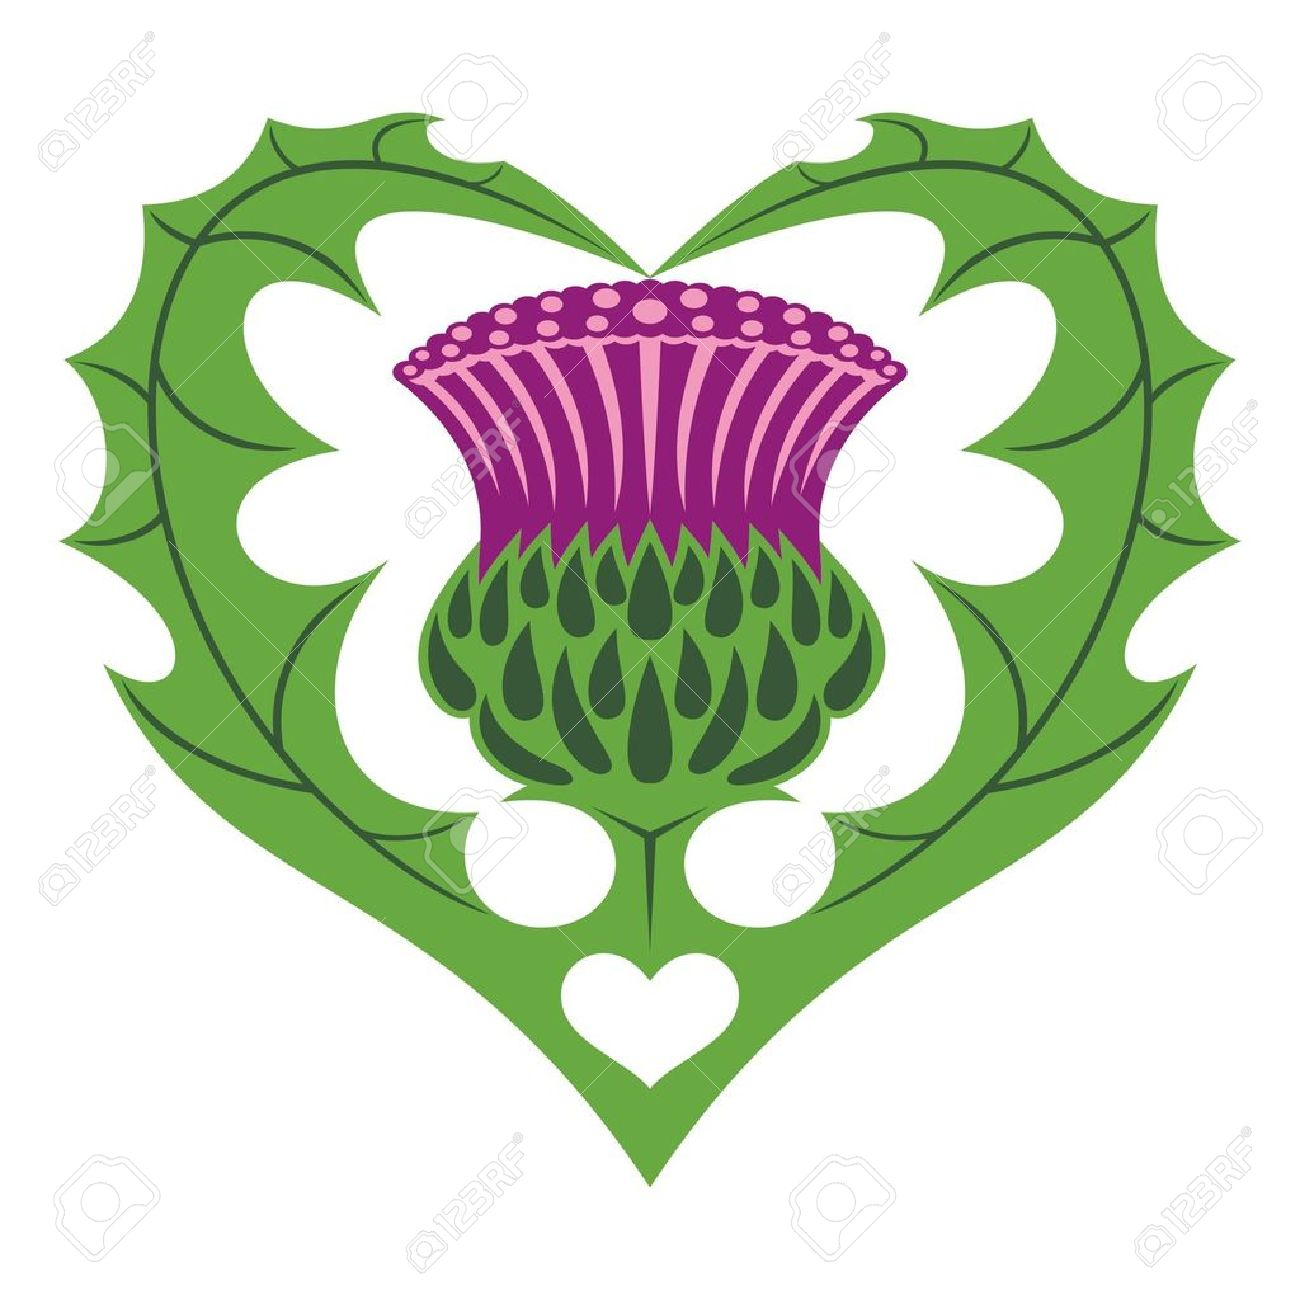 Thistle clipart scotland vector transparent library Thistle Clipart | Free download best Thistle Clipart on ClipArtMag.com vector transparent library